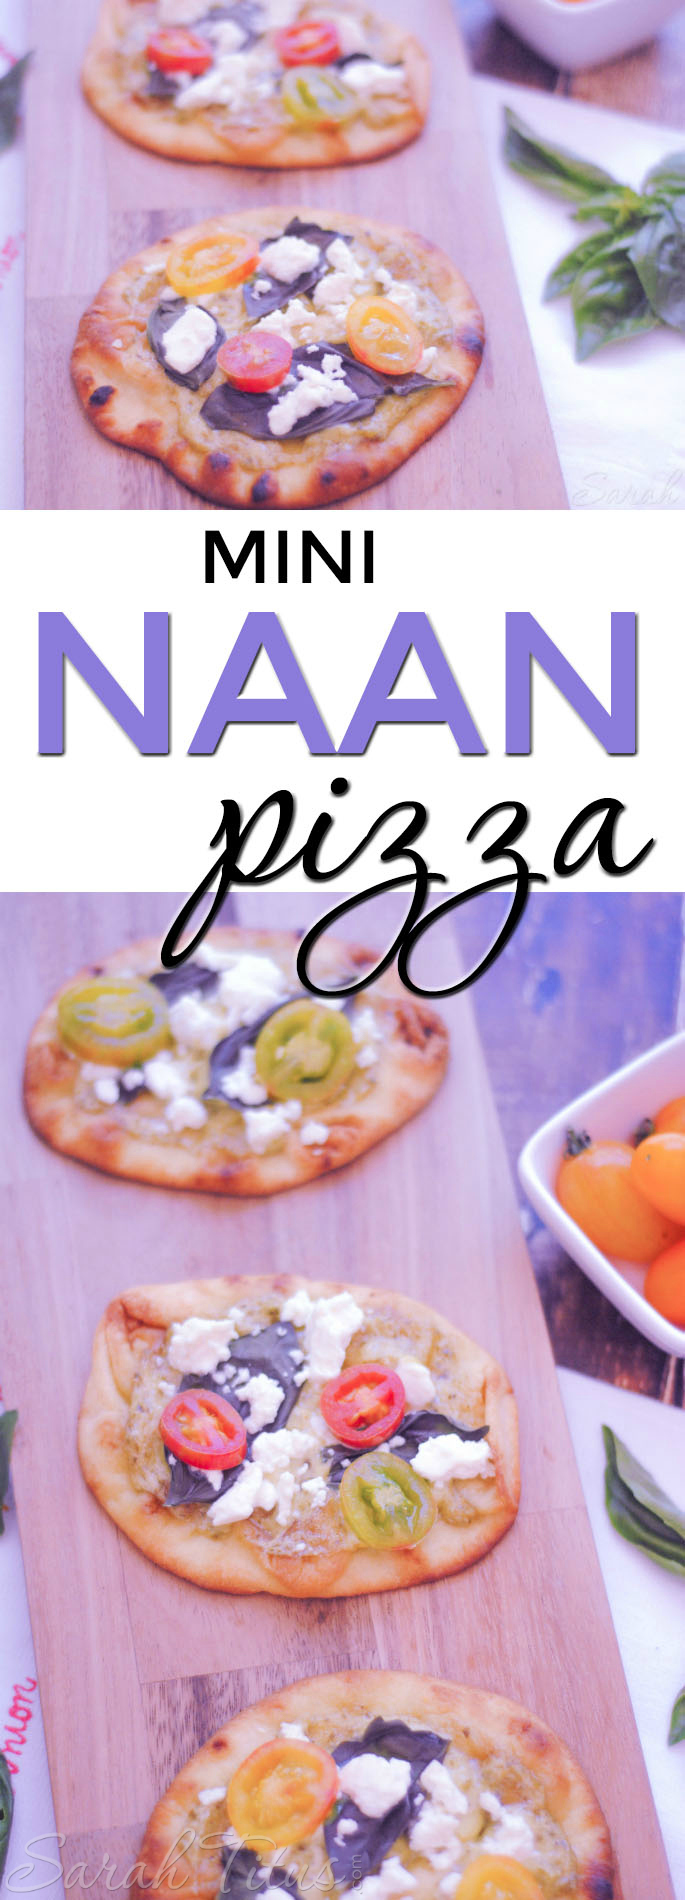 """Are you tired of the same old pizza with red sauce? Step out of your """"pizza rut"""" with this Mini Naan Pizza! So good, I bet you can't eat just one!"""